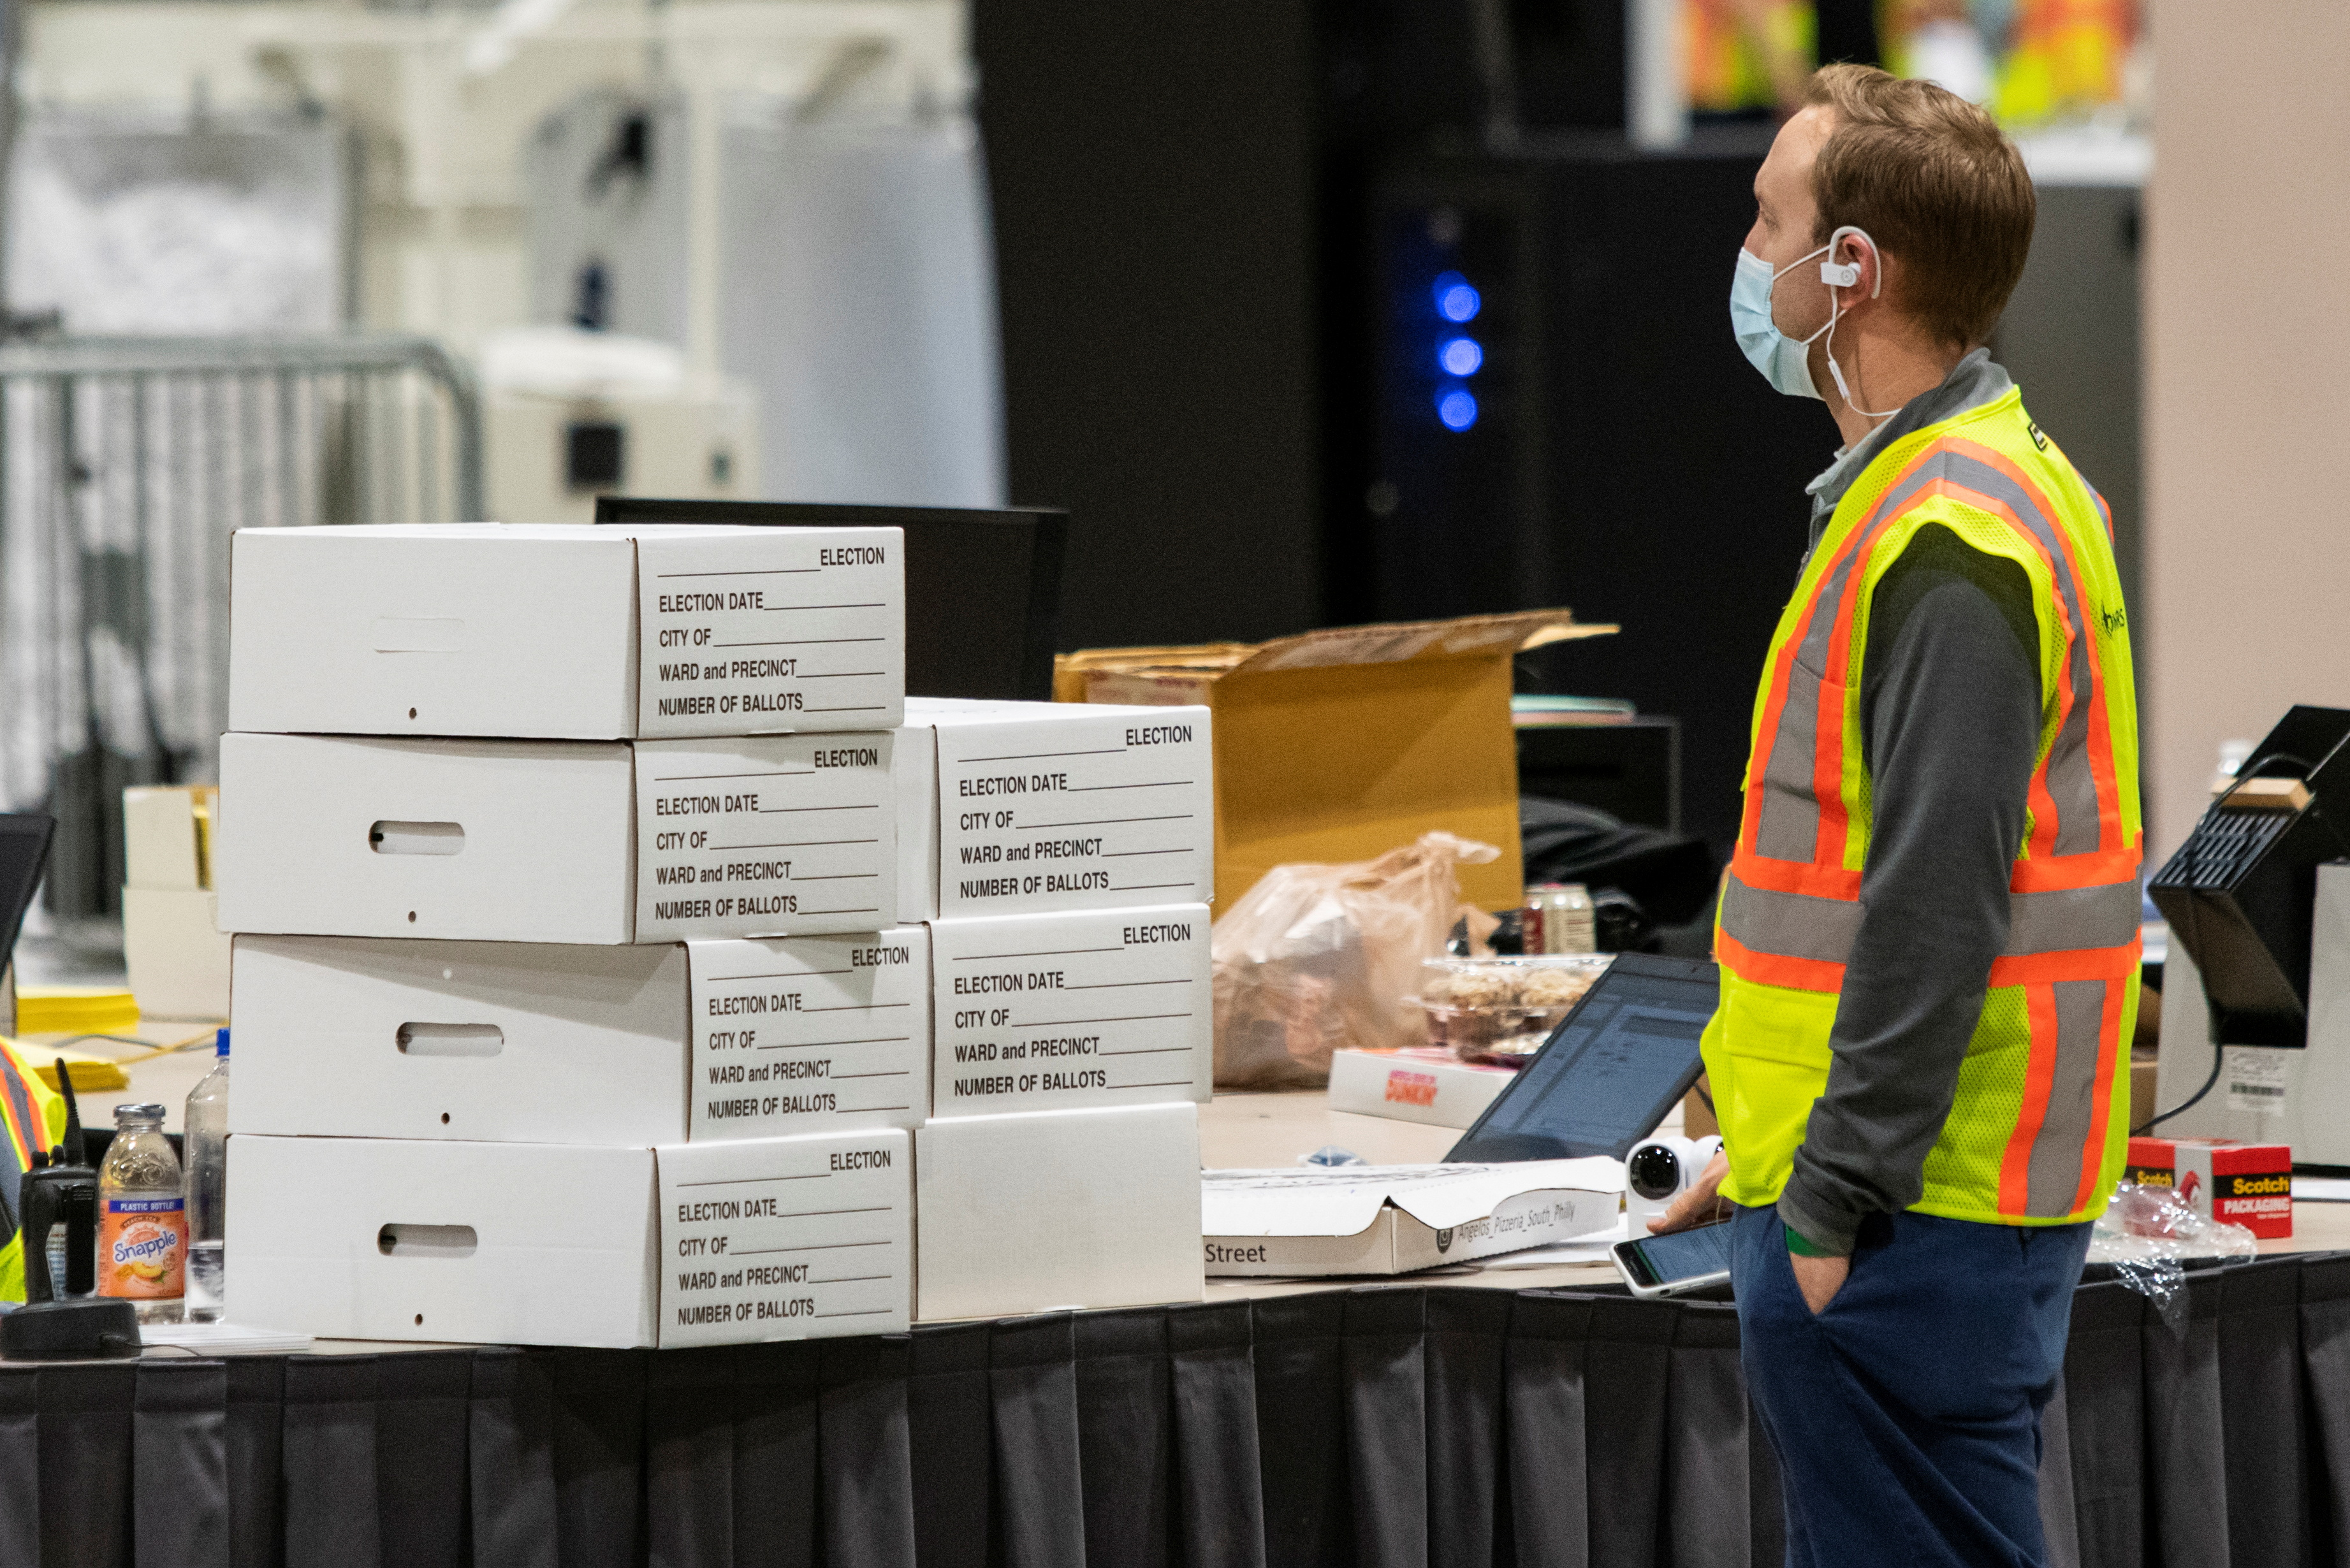 An electoral worker stands next to boxes with ballot material following the 2020 U.S. presidential election, in Philadelphia, Pennsylvania, U.S. November 6, 2020. REUTERS/Eduardo Mu?oz